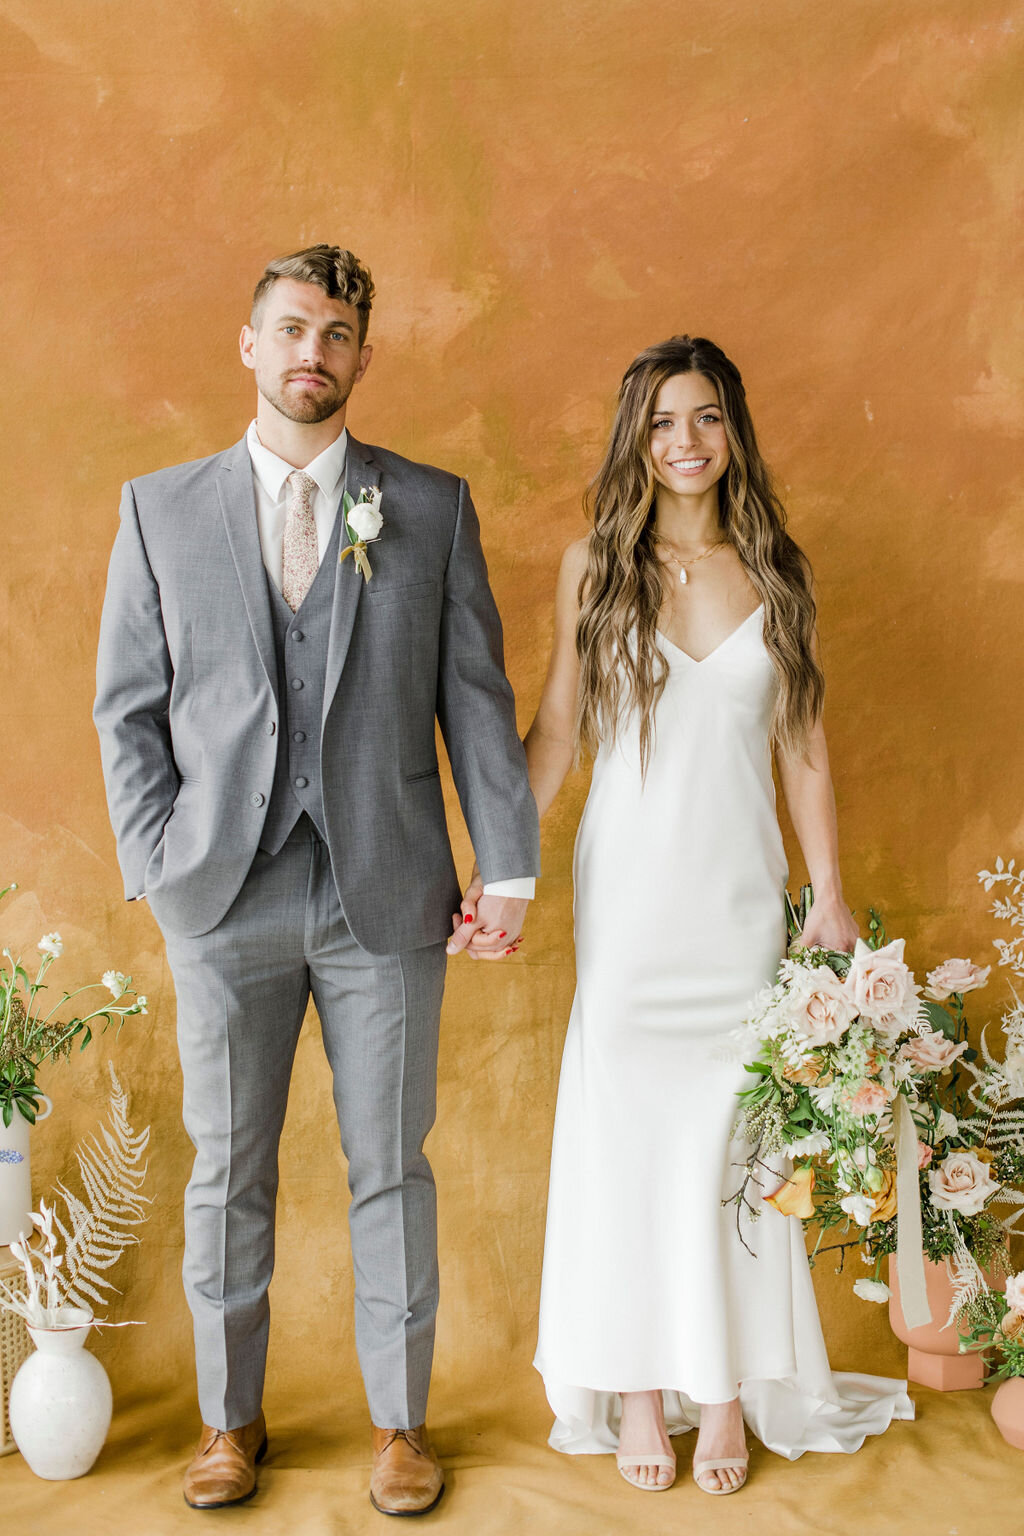 wedding photo shoot goals with gorgeous groom and bridal hairstyle and wedding dress with silk ribbon boho bouquet